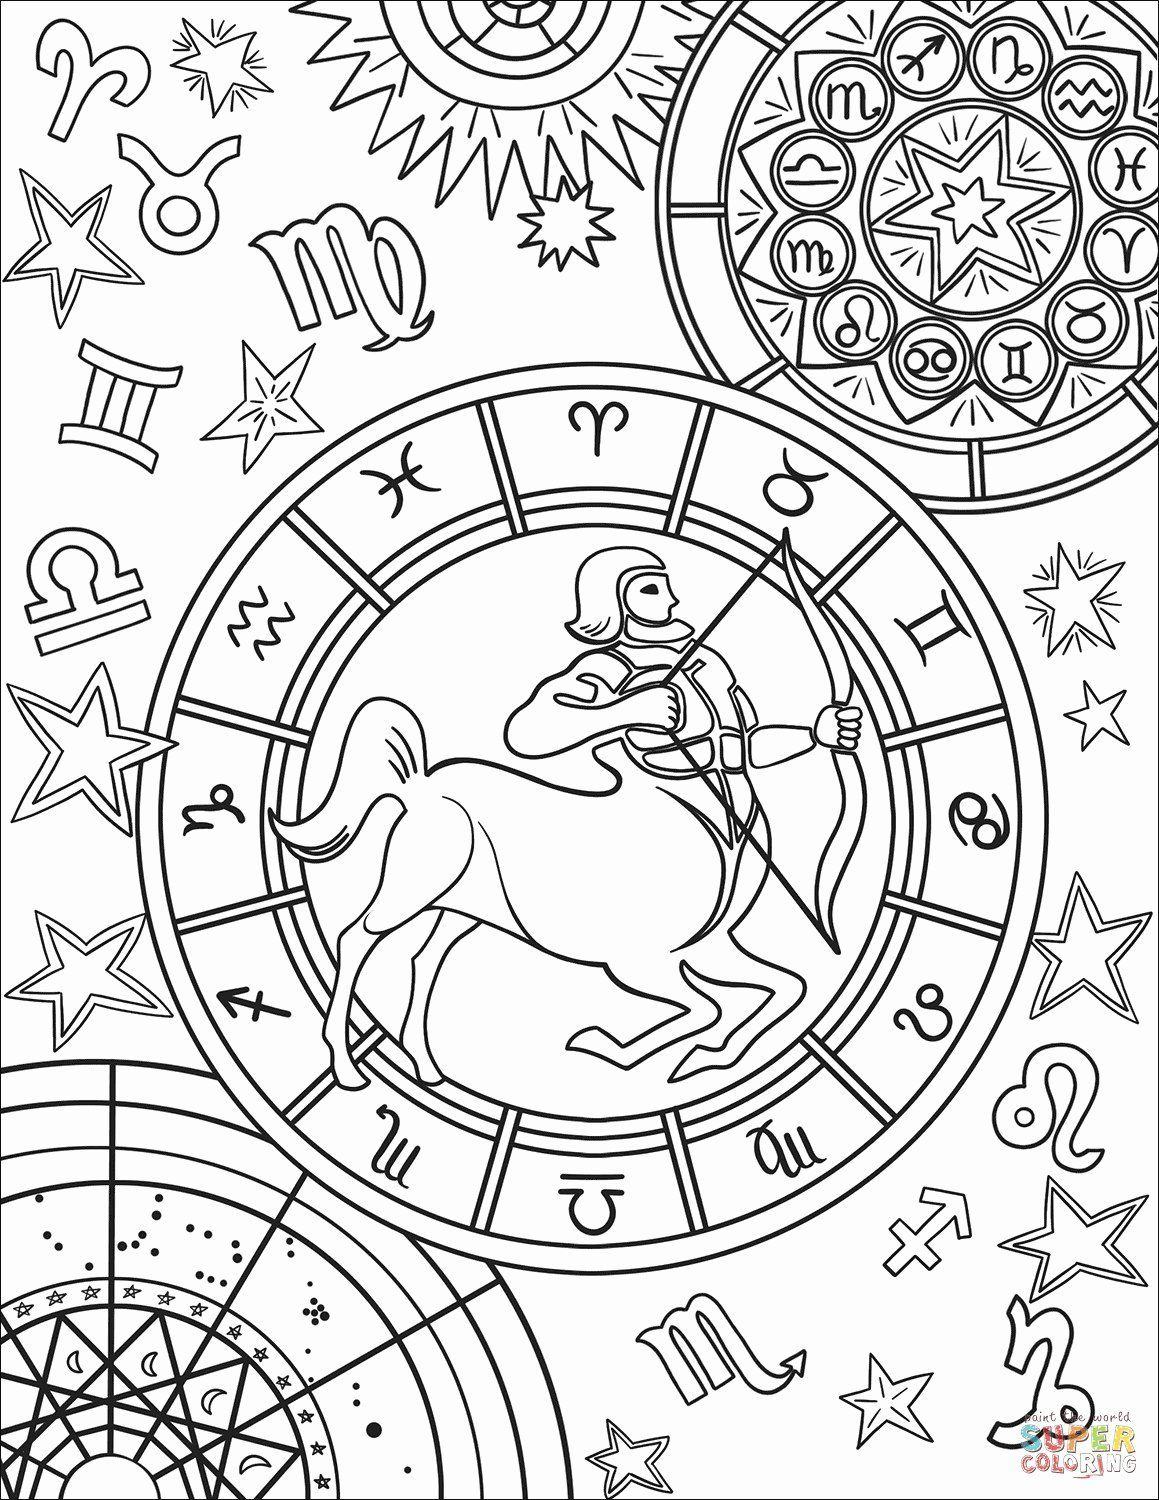 Design Coloring Pictures Elegant Astrological Signs Coloring Sheets Elegant Zodiac Coloring In 2020 Space Coloring Pages Designs Coloring Books Star Coloring Pages